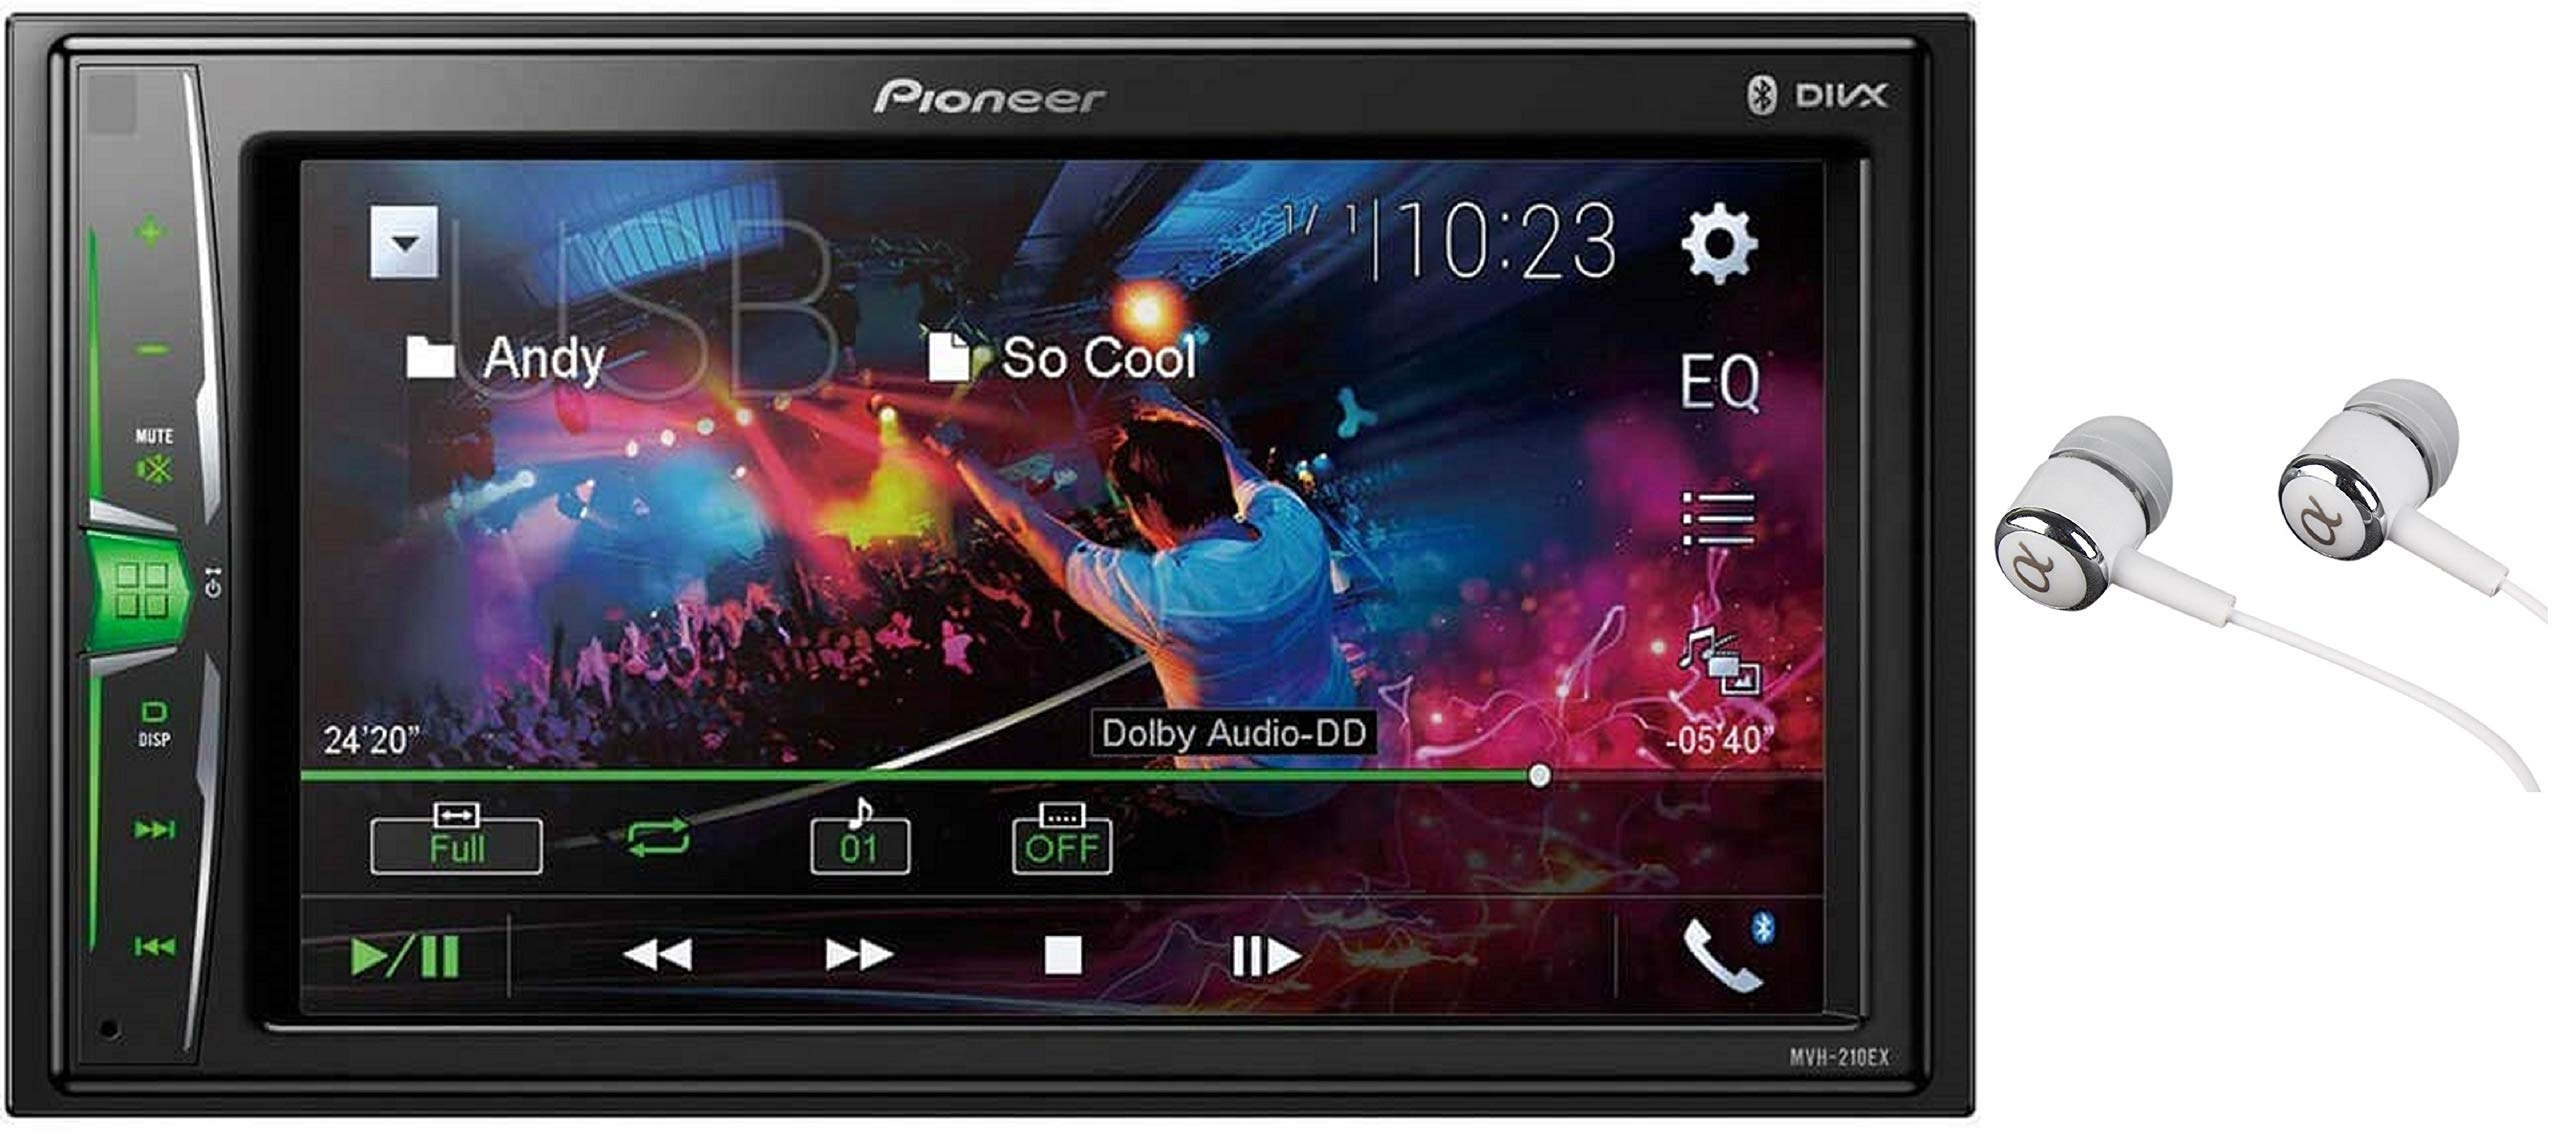 Pioneer MVH-210EX 6 2'' VGA Touchscreen WebLink Double DIN, Bluetooth USB MP3 Aux Input, in-Dash Siri Eyes Free & Google VR, Multi-Color Illumination Digital Media Receiver/Free ALPHASONIK Earbuds by PIONEER